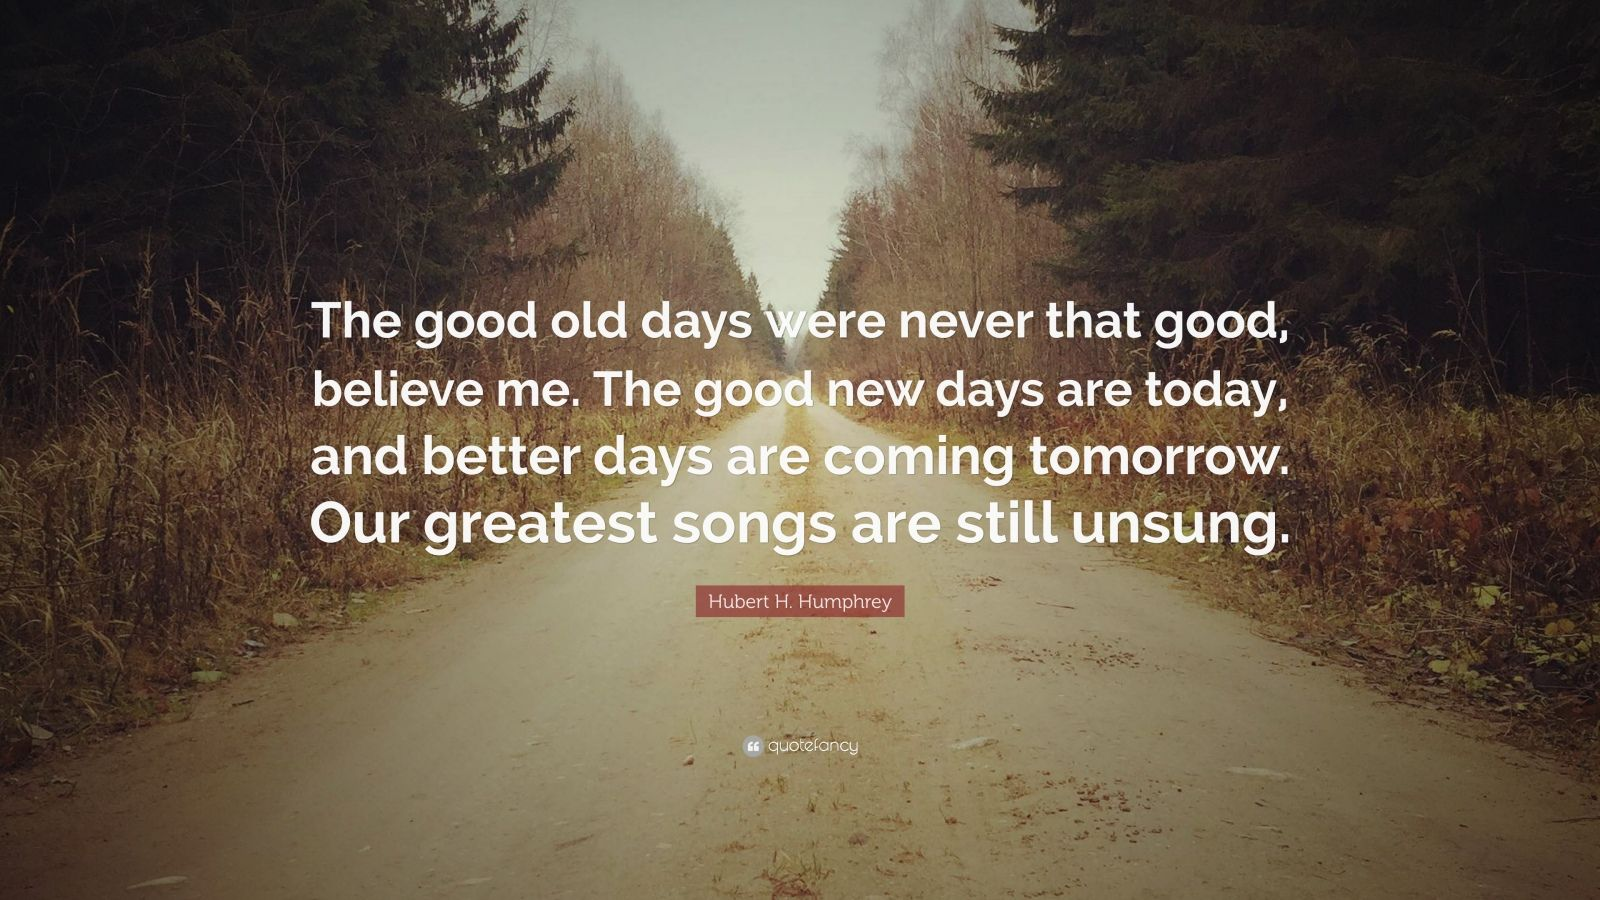 """Hubert H. Humphrey Quote: """"The good old days were never that good, believe me. The good new days are today, and better days are coming tomorrow. Our greatest songs are still unsung."""""""